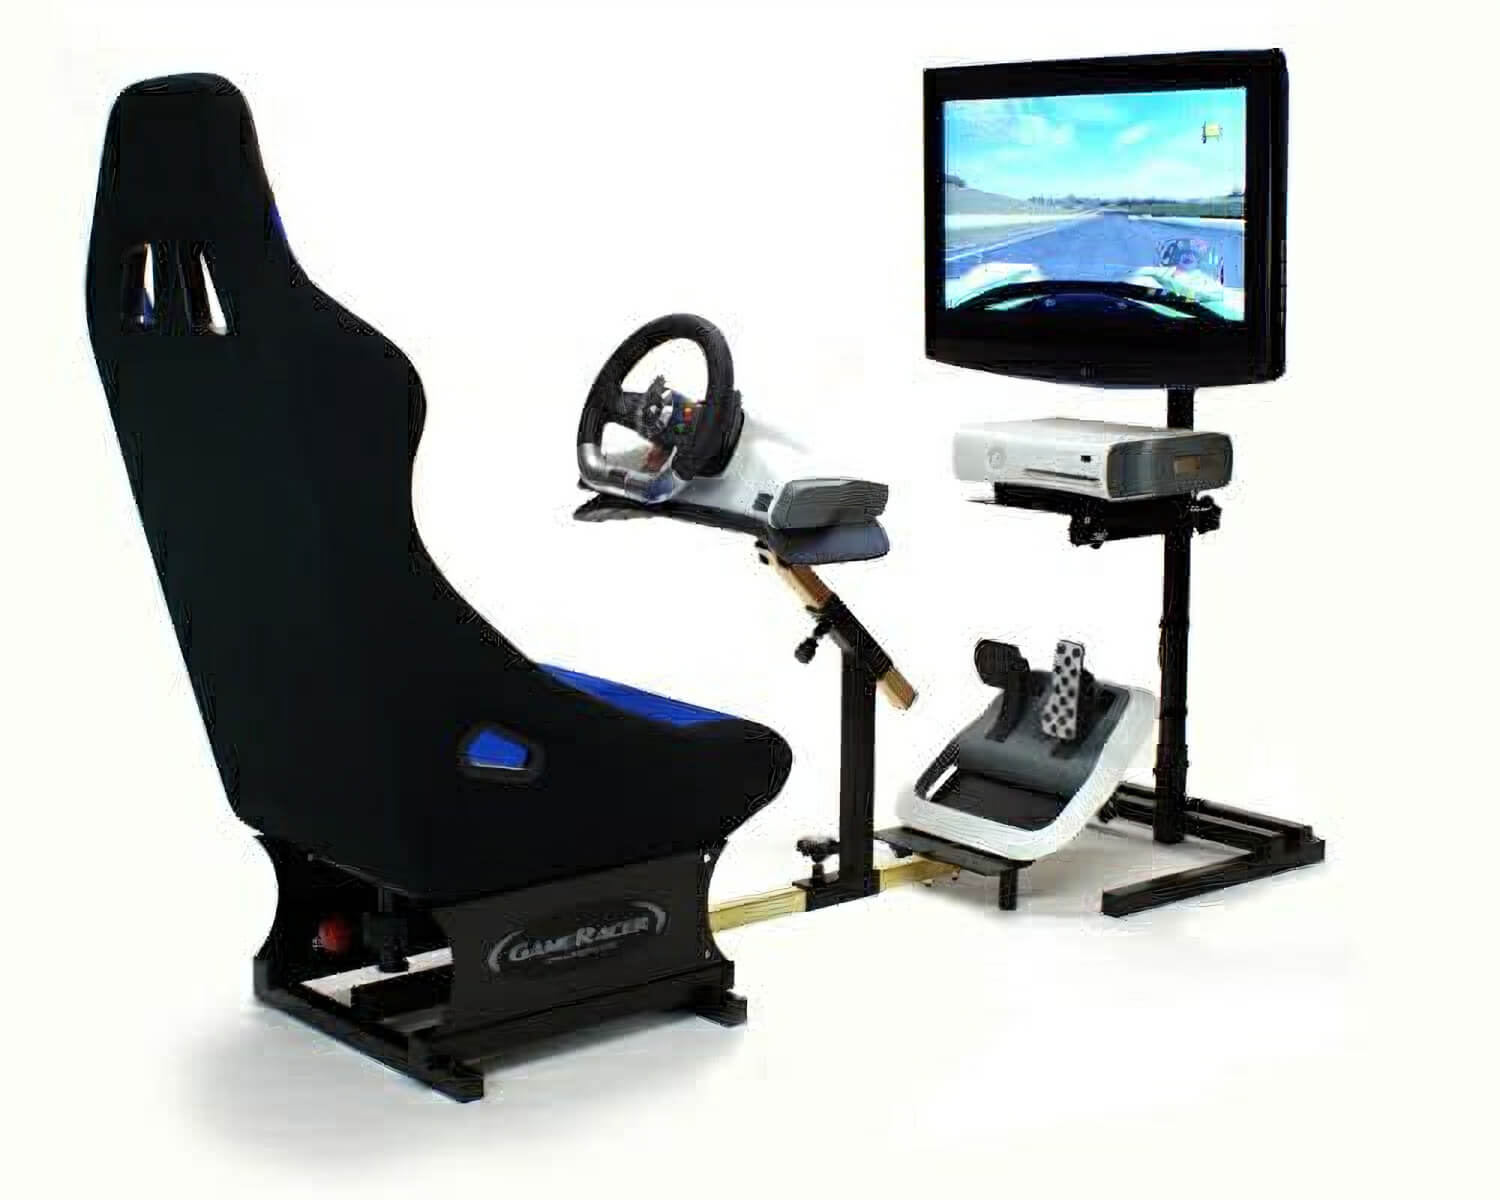 Racer Elite Driving Simulator Seat Xbox PS3 PC Compatible – Xbox Racing Chair